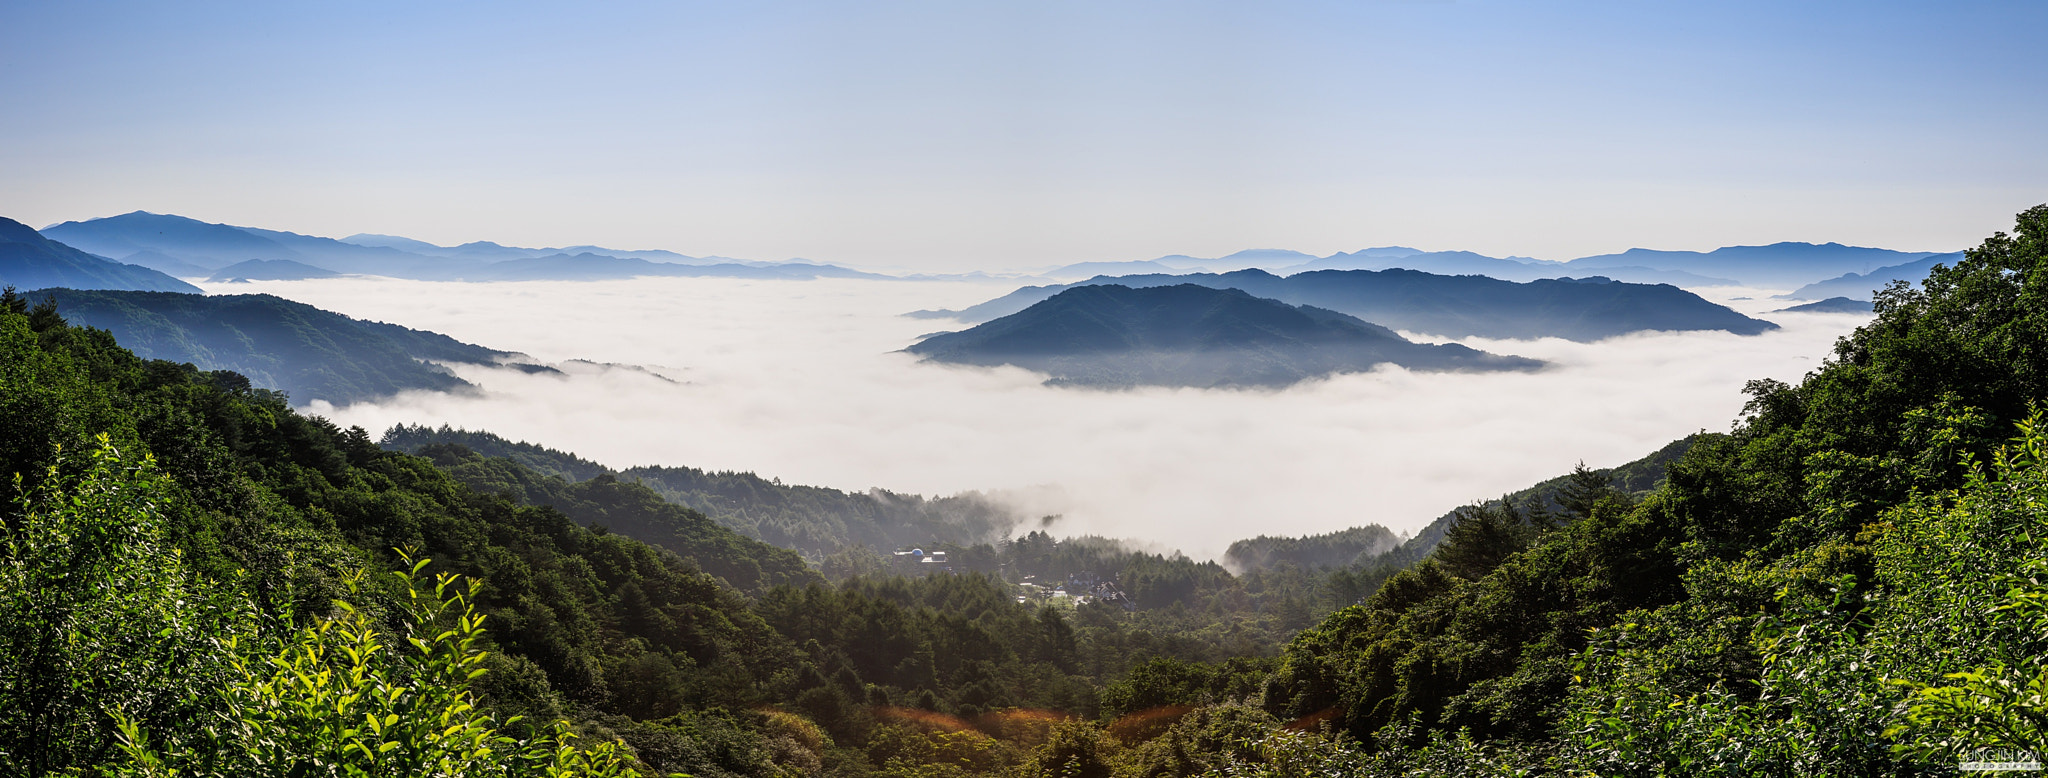 Photograph Sea of clouds by Sungjin Kim on 500px